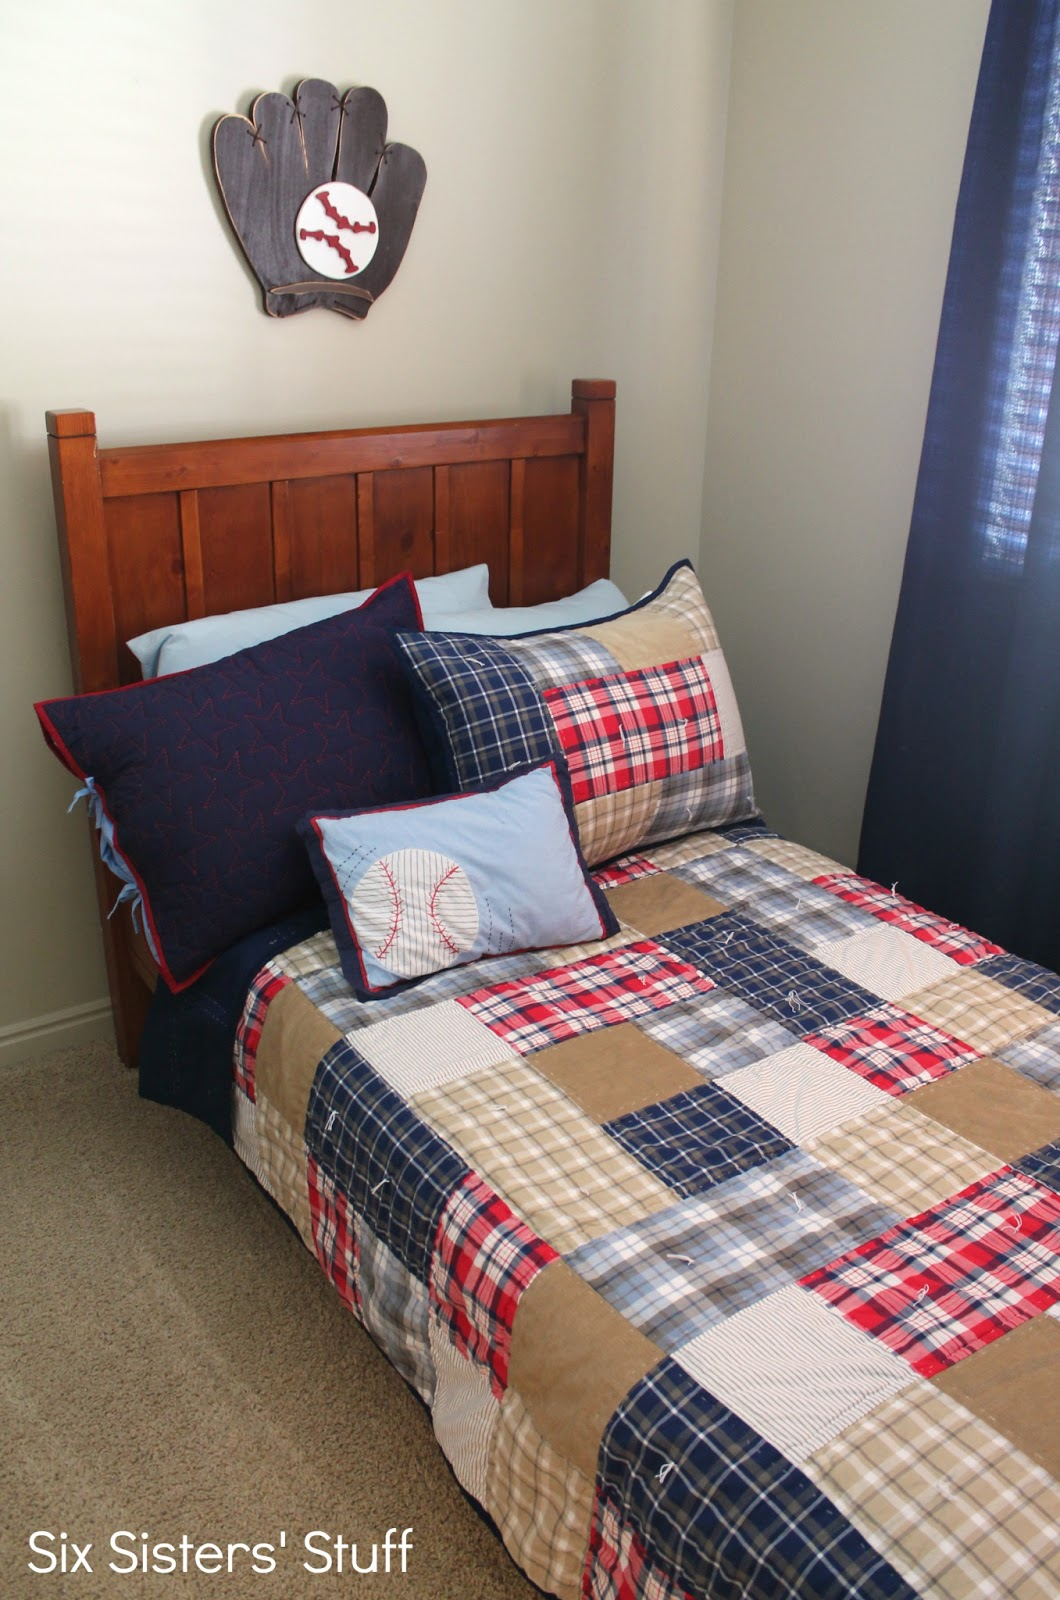 Decorating a Boy's Bedroom on a Budget | Six Sisters' Stuff